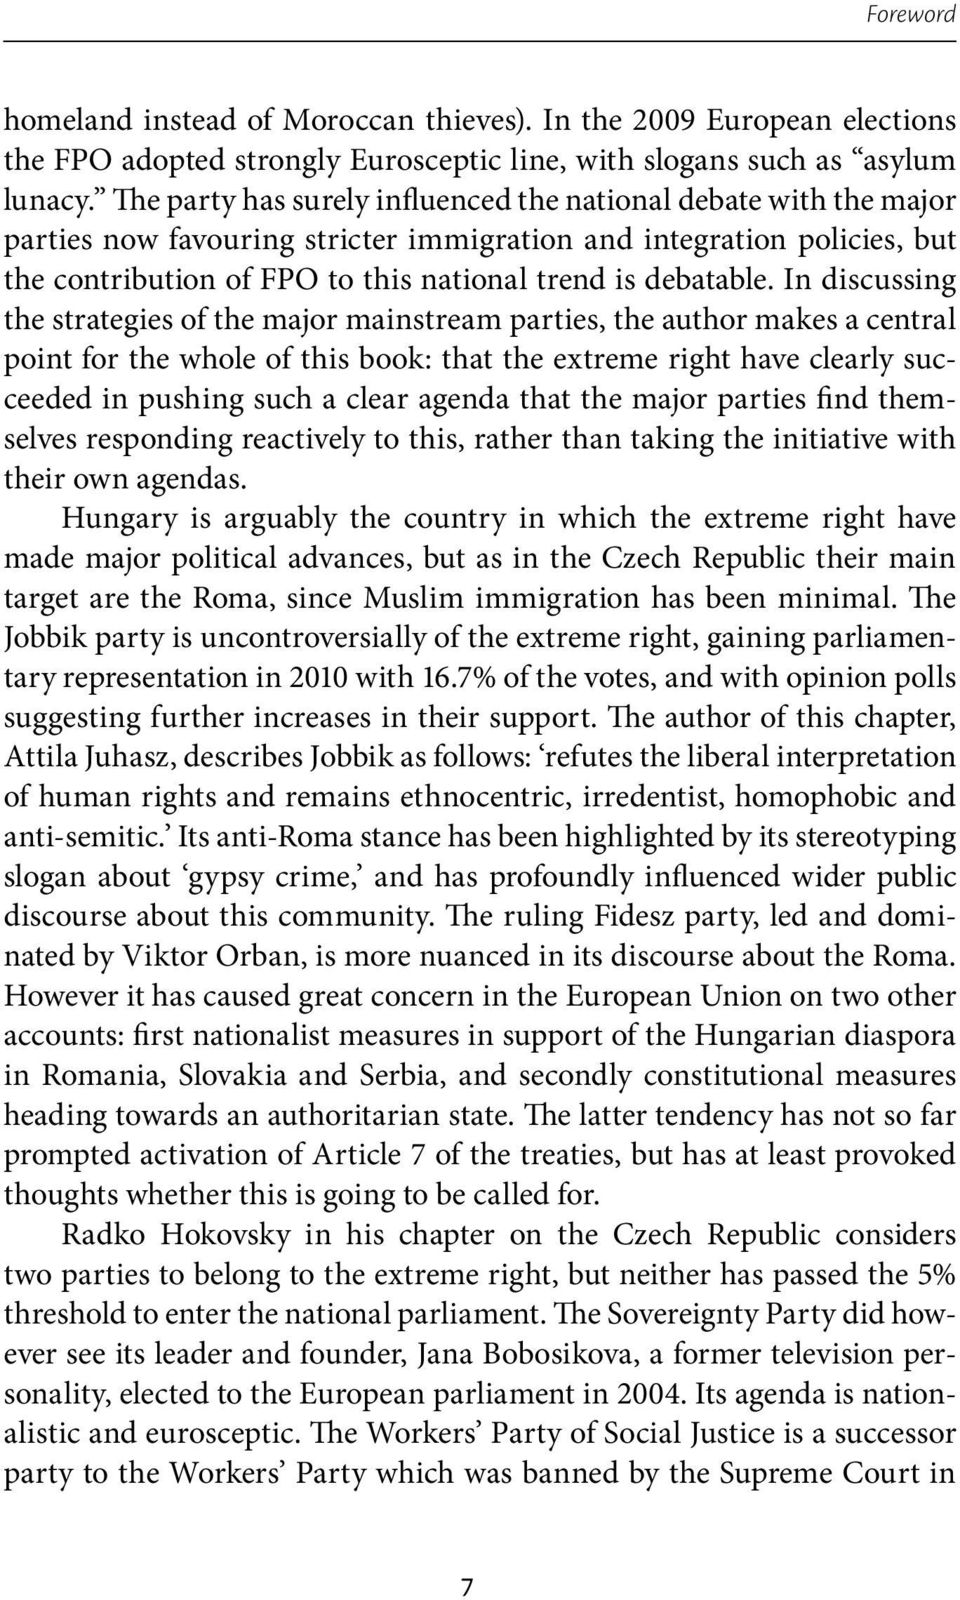 In discussing the strategies of the major mainstream parties, the author makes a central point for the whole of this book: that the extreme right have clearly succeeded in pushing such a clear agenda